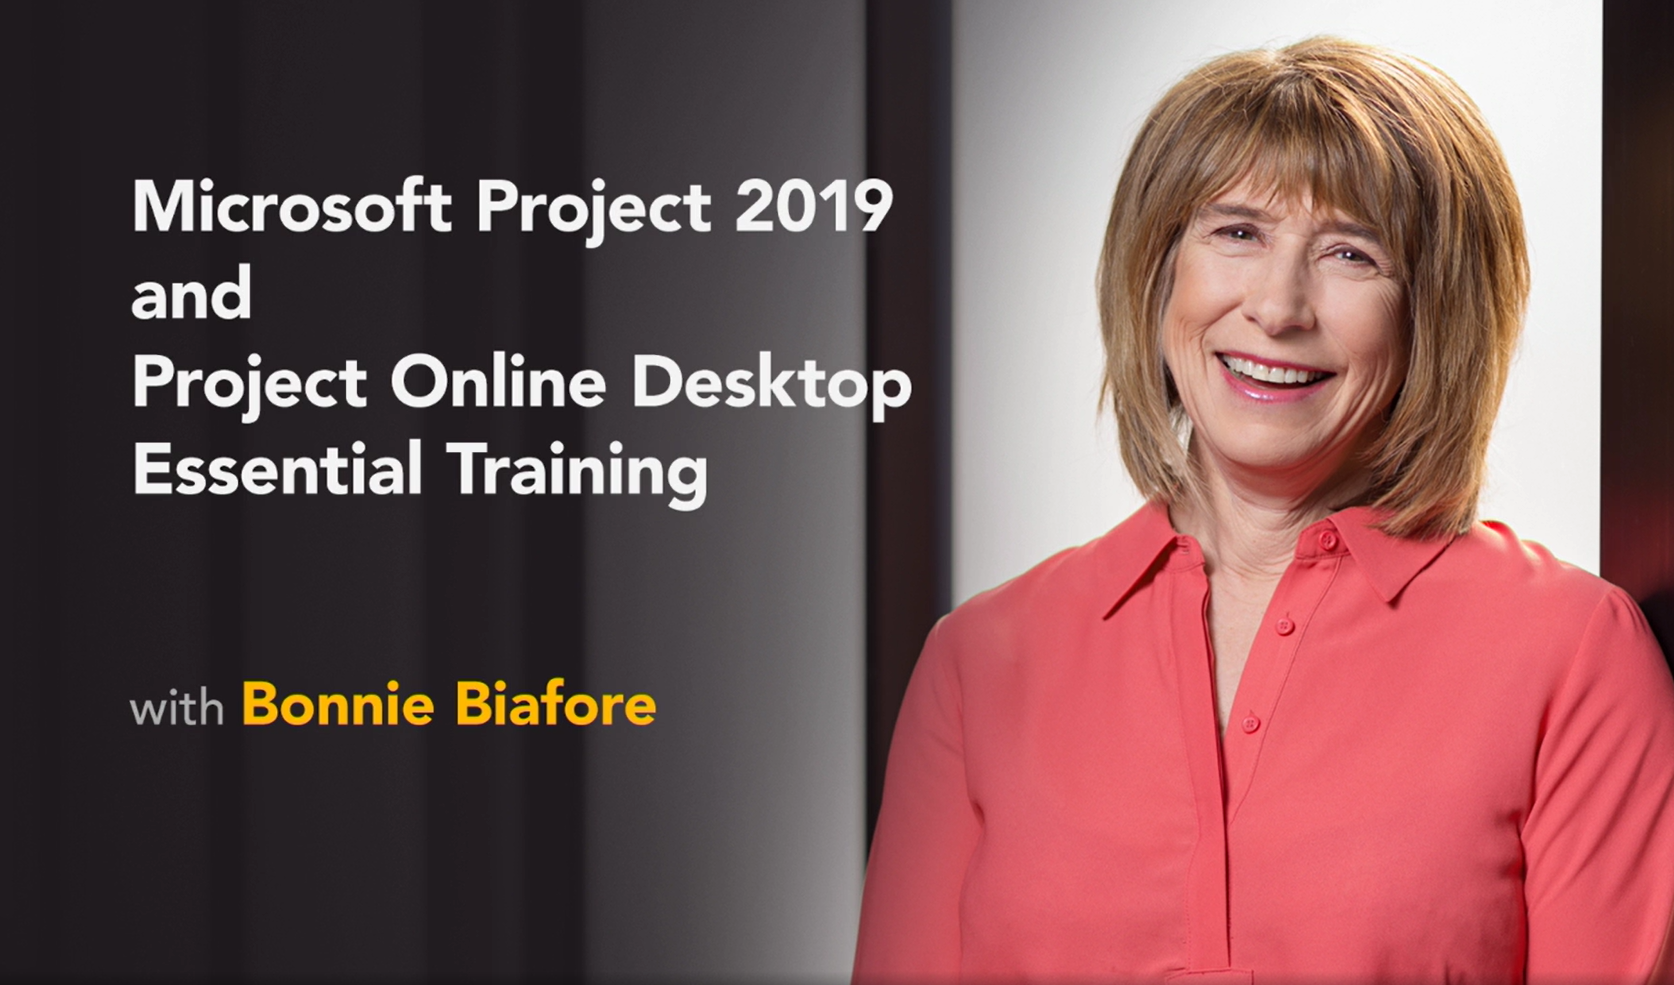 microsoft-project-2019-free-online-training-from-lynda-linkedin-learning-1.png